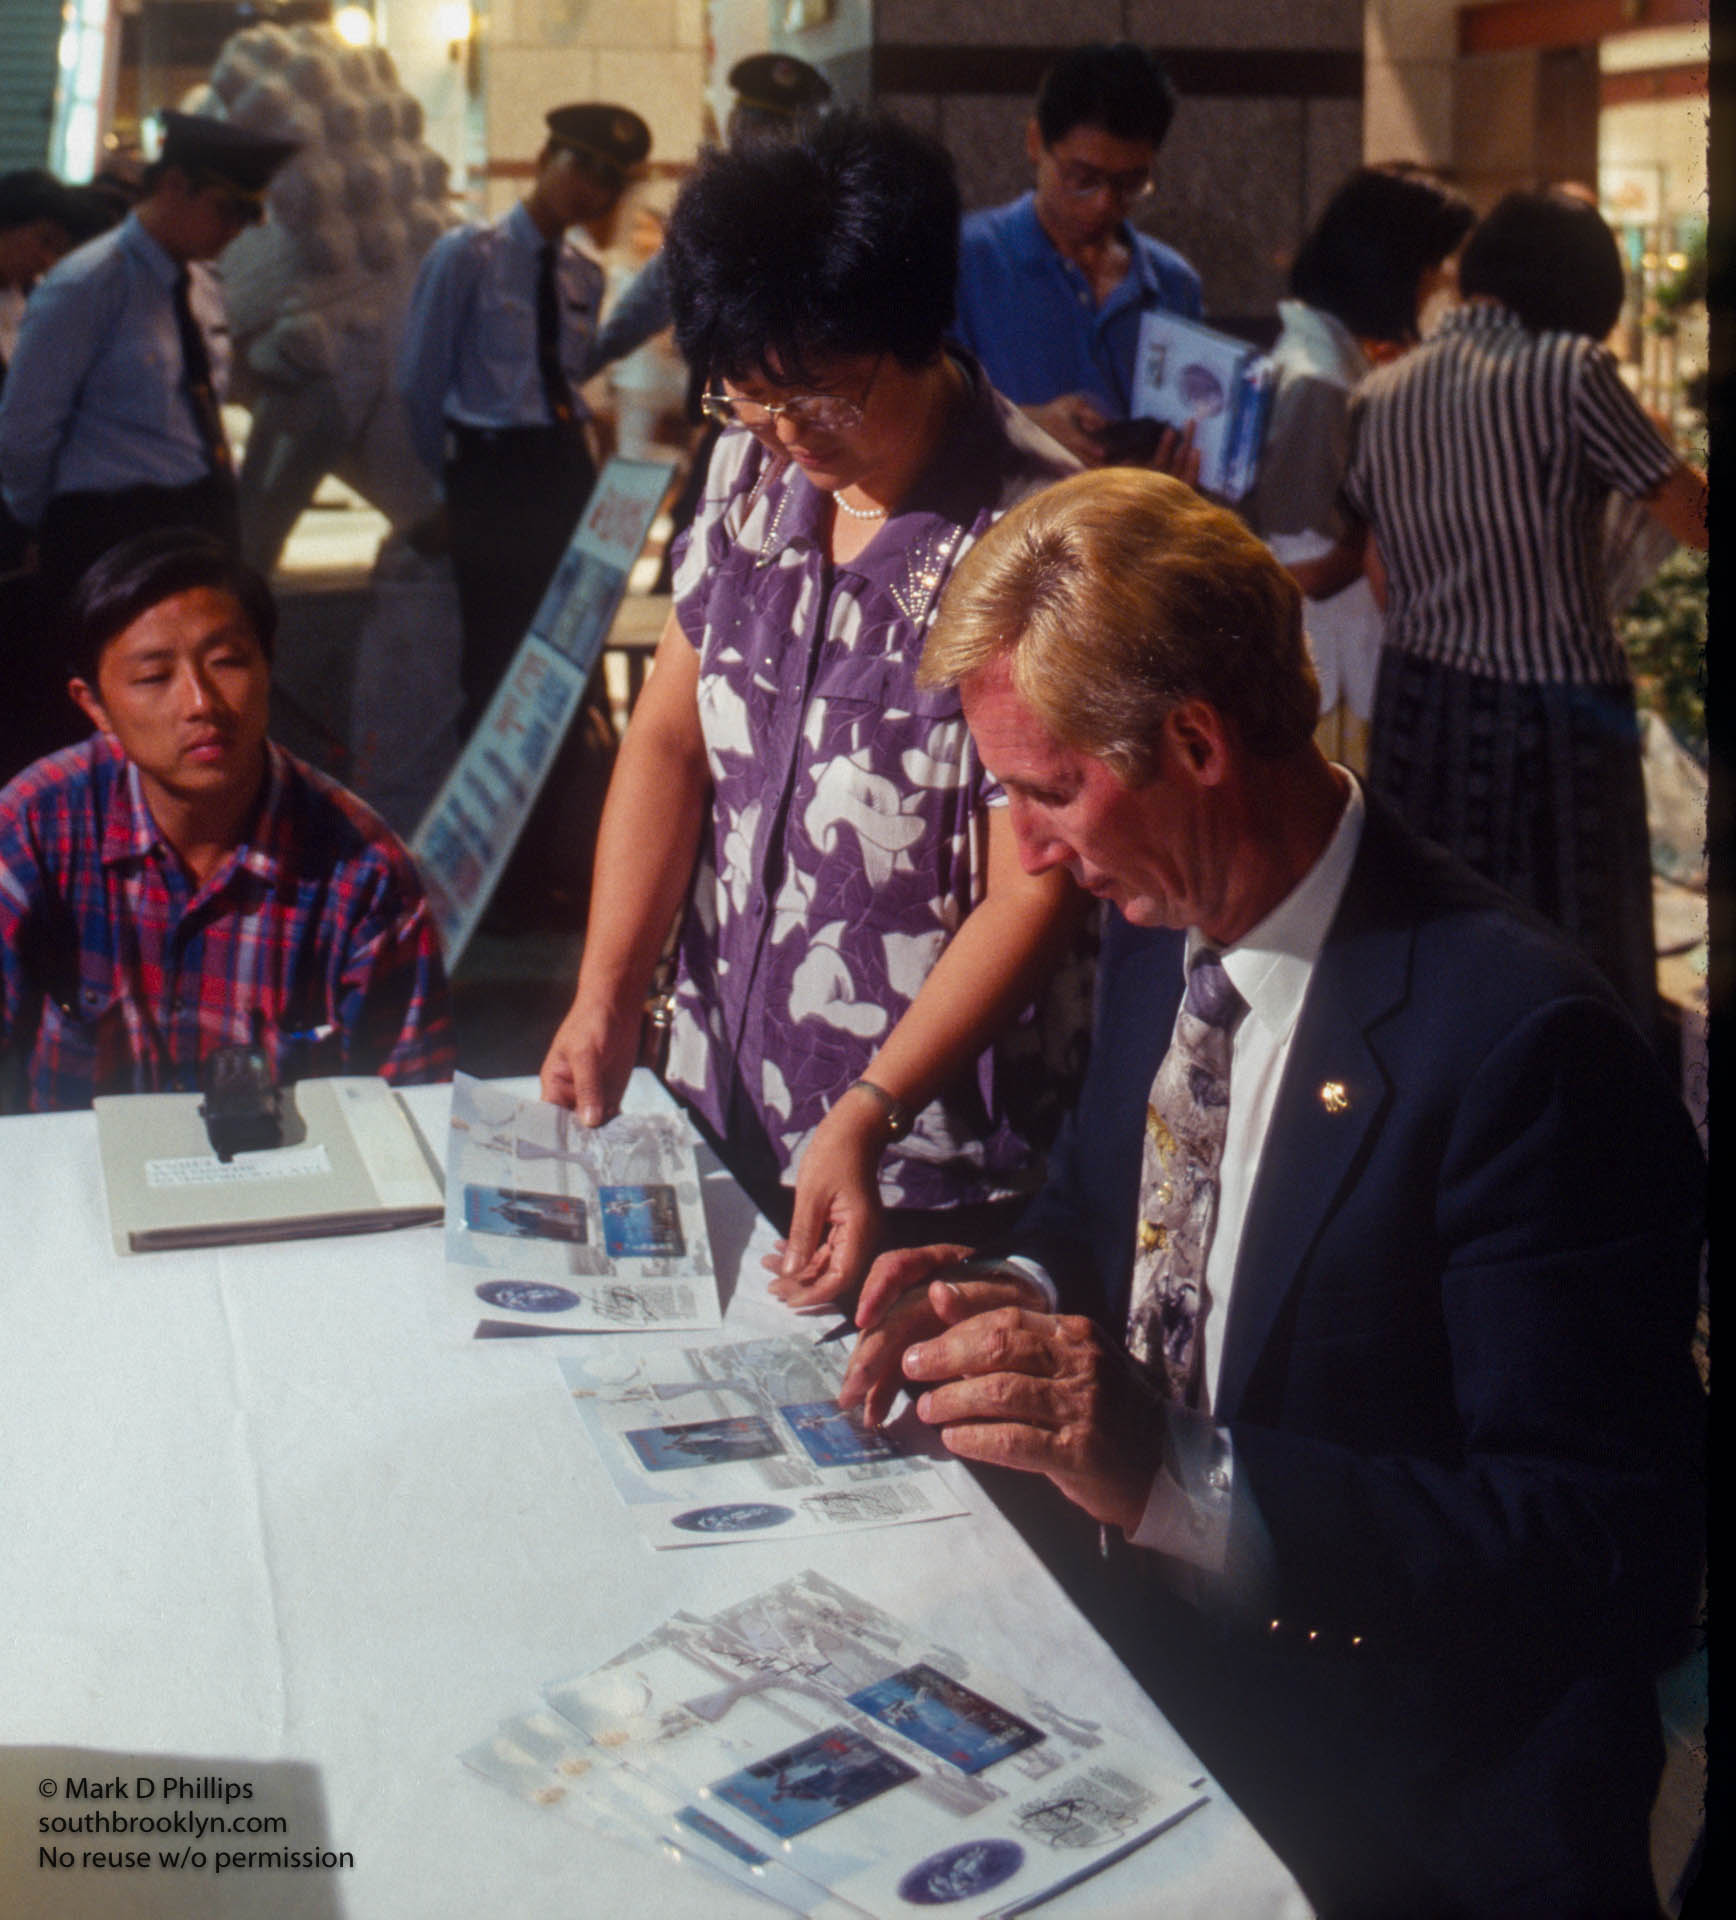 Jay Cochrane signs autographs in Shanghai, China, before the Shanghai Tourism Festival on September 24, 1996.